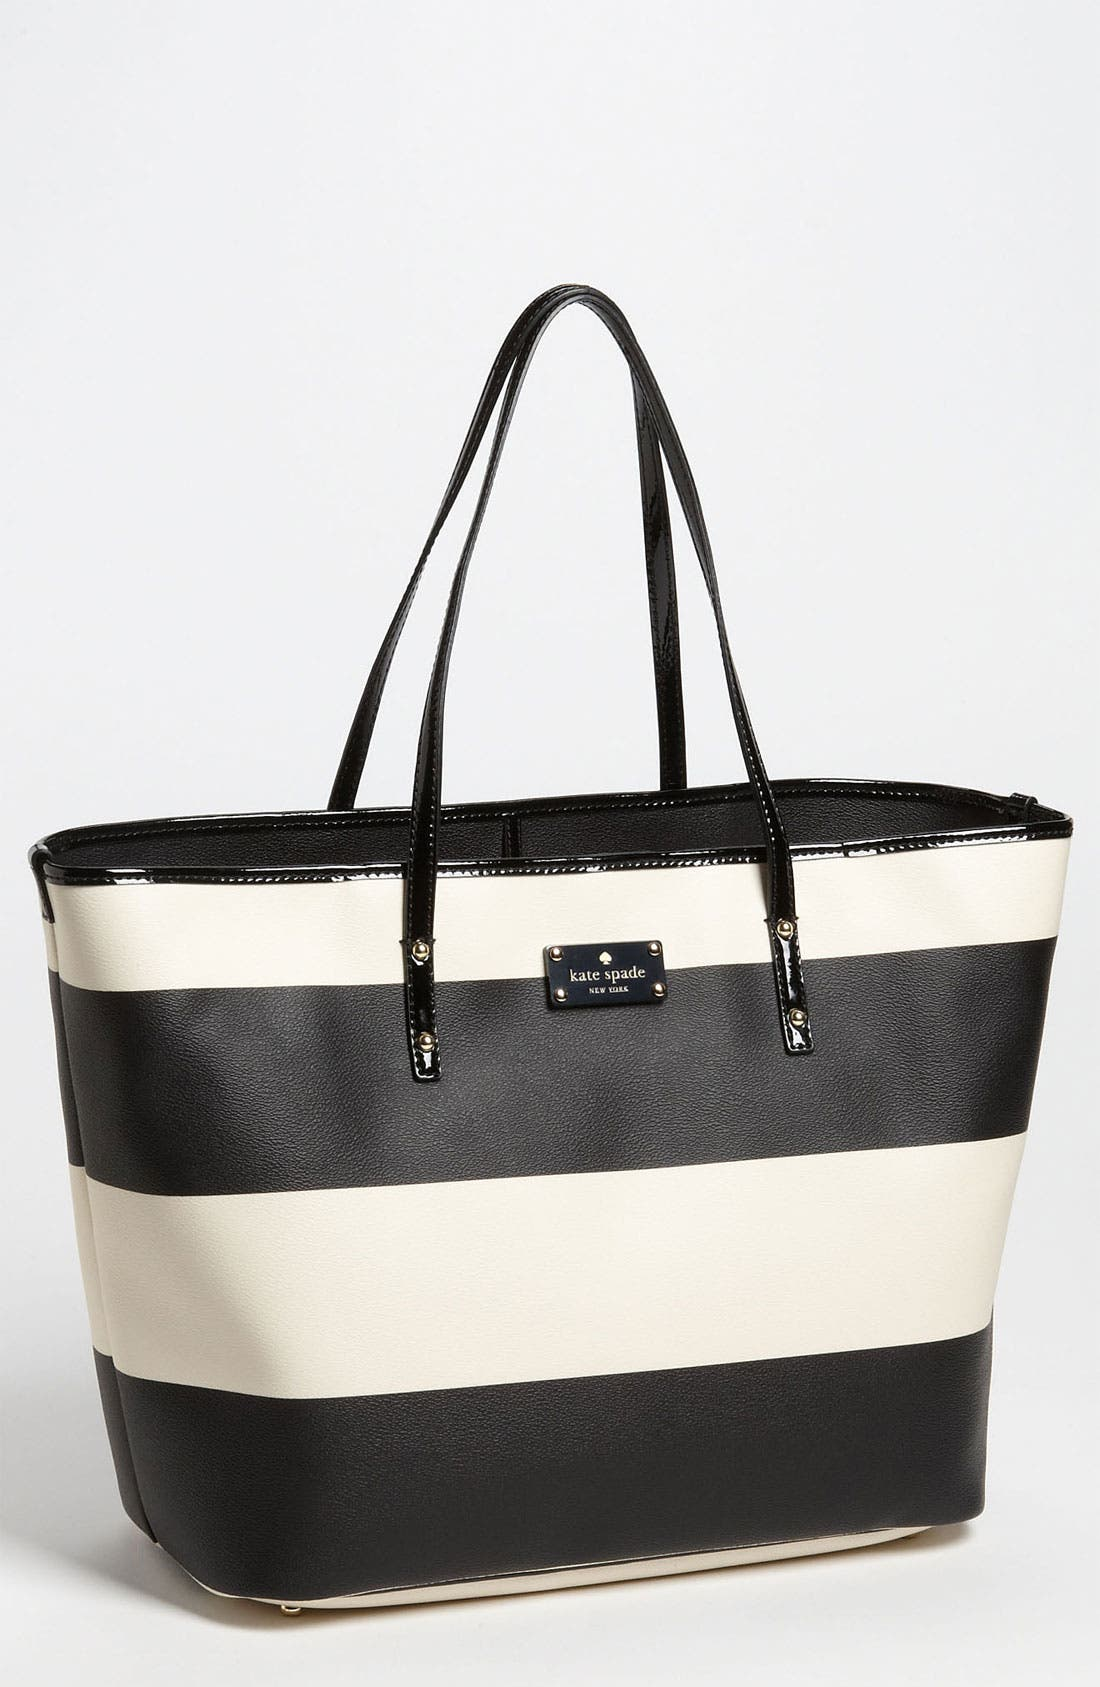 Alternate Image 1 Selected - kate spade new york 'boutique stripe - harmony' tote